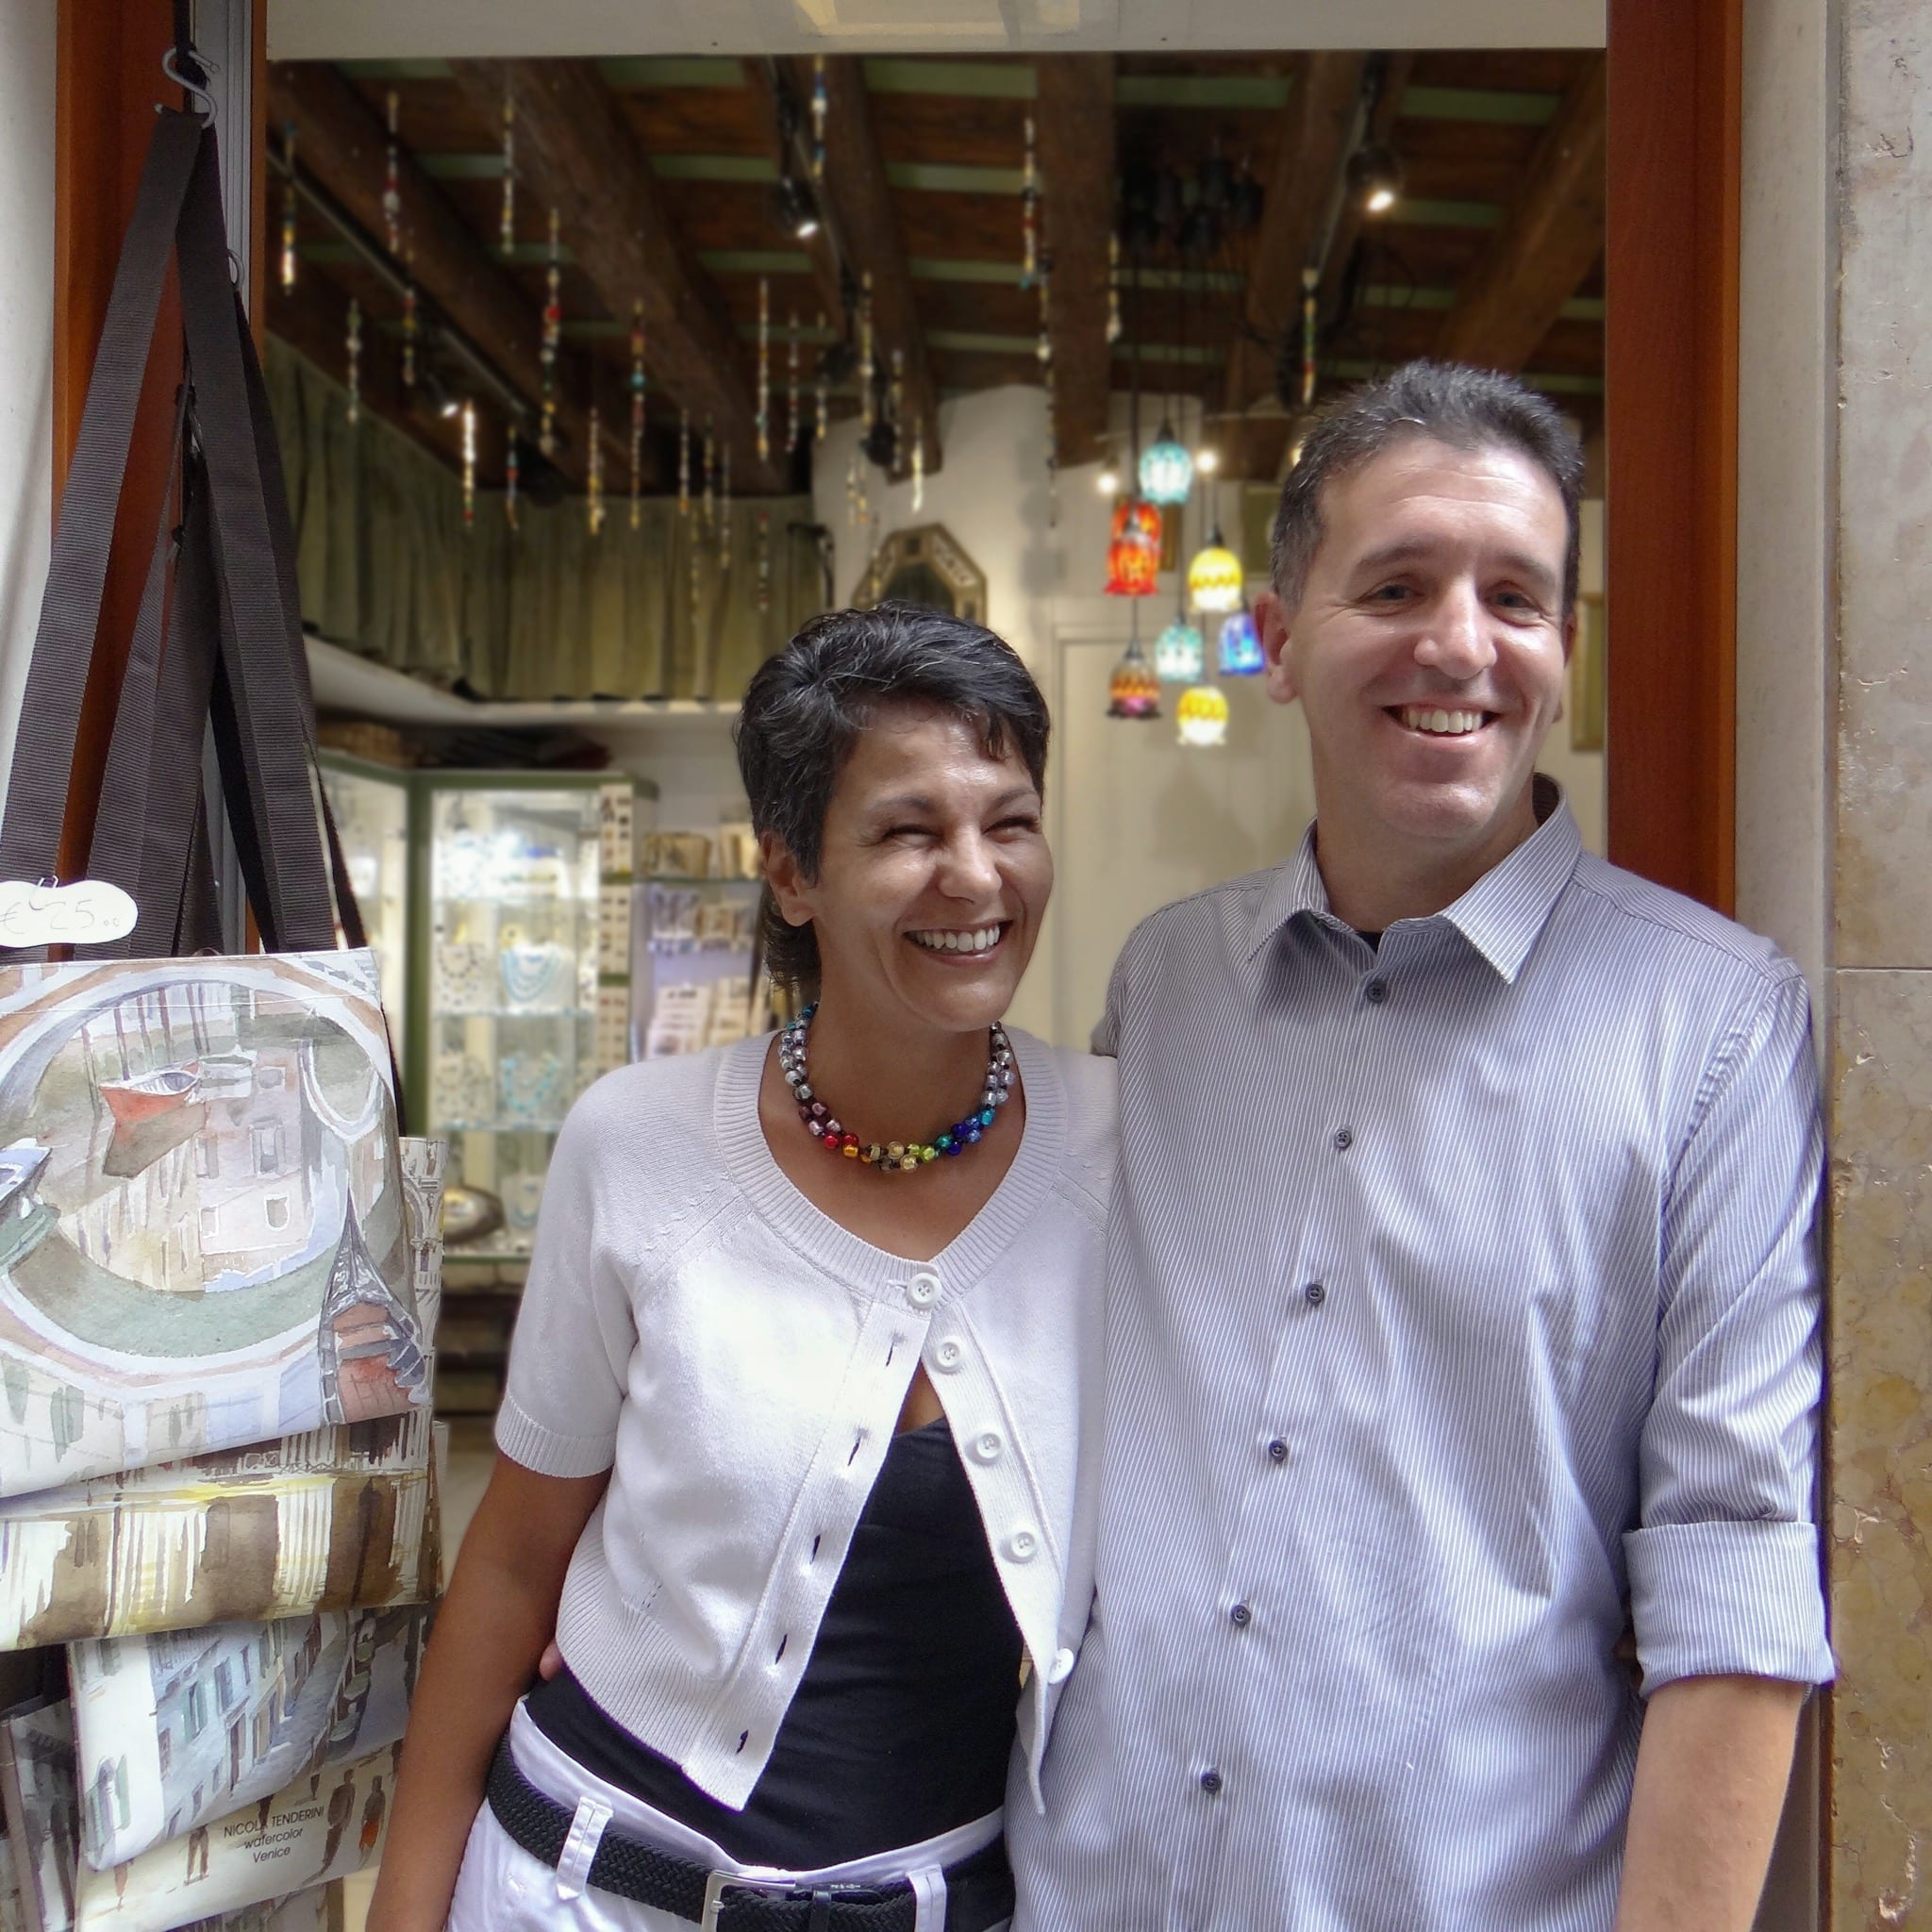 Nicola and Elena Miani, in front of their workshop in Venice, Cannaregio